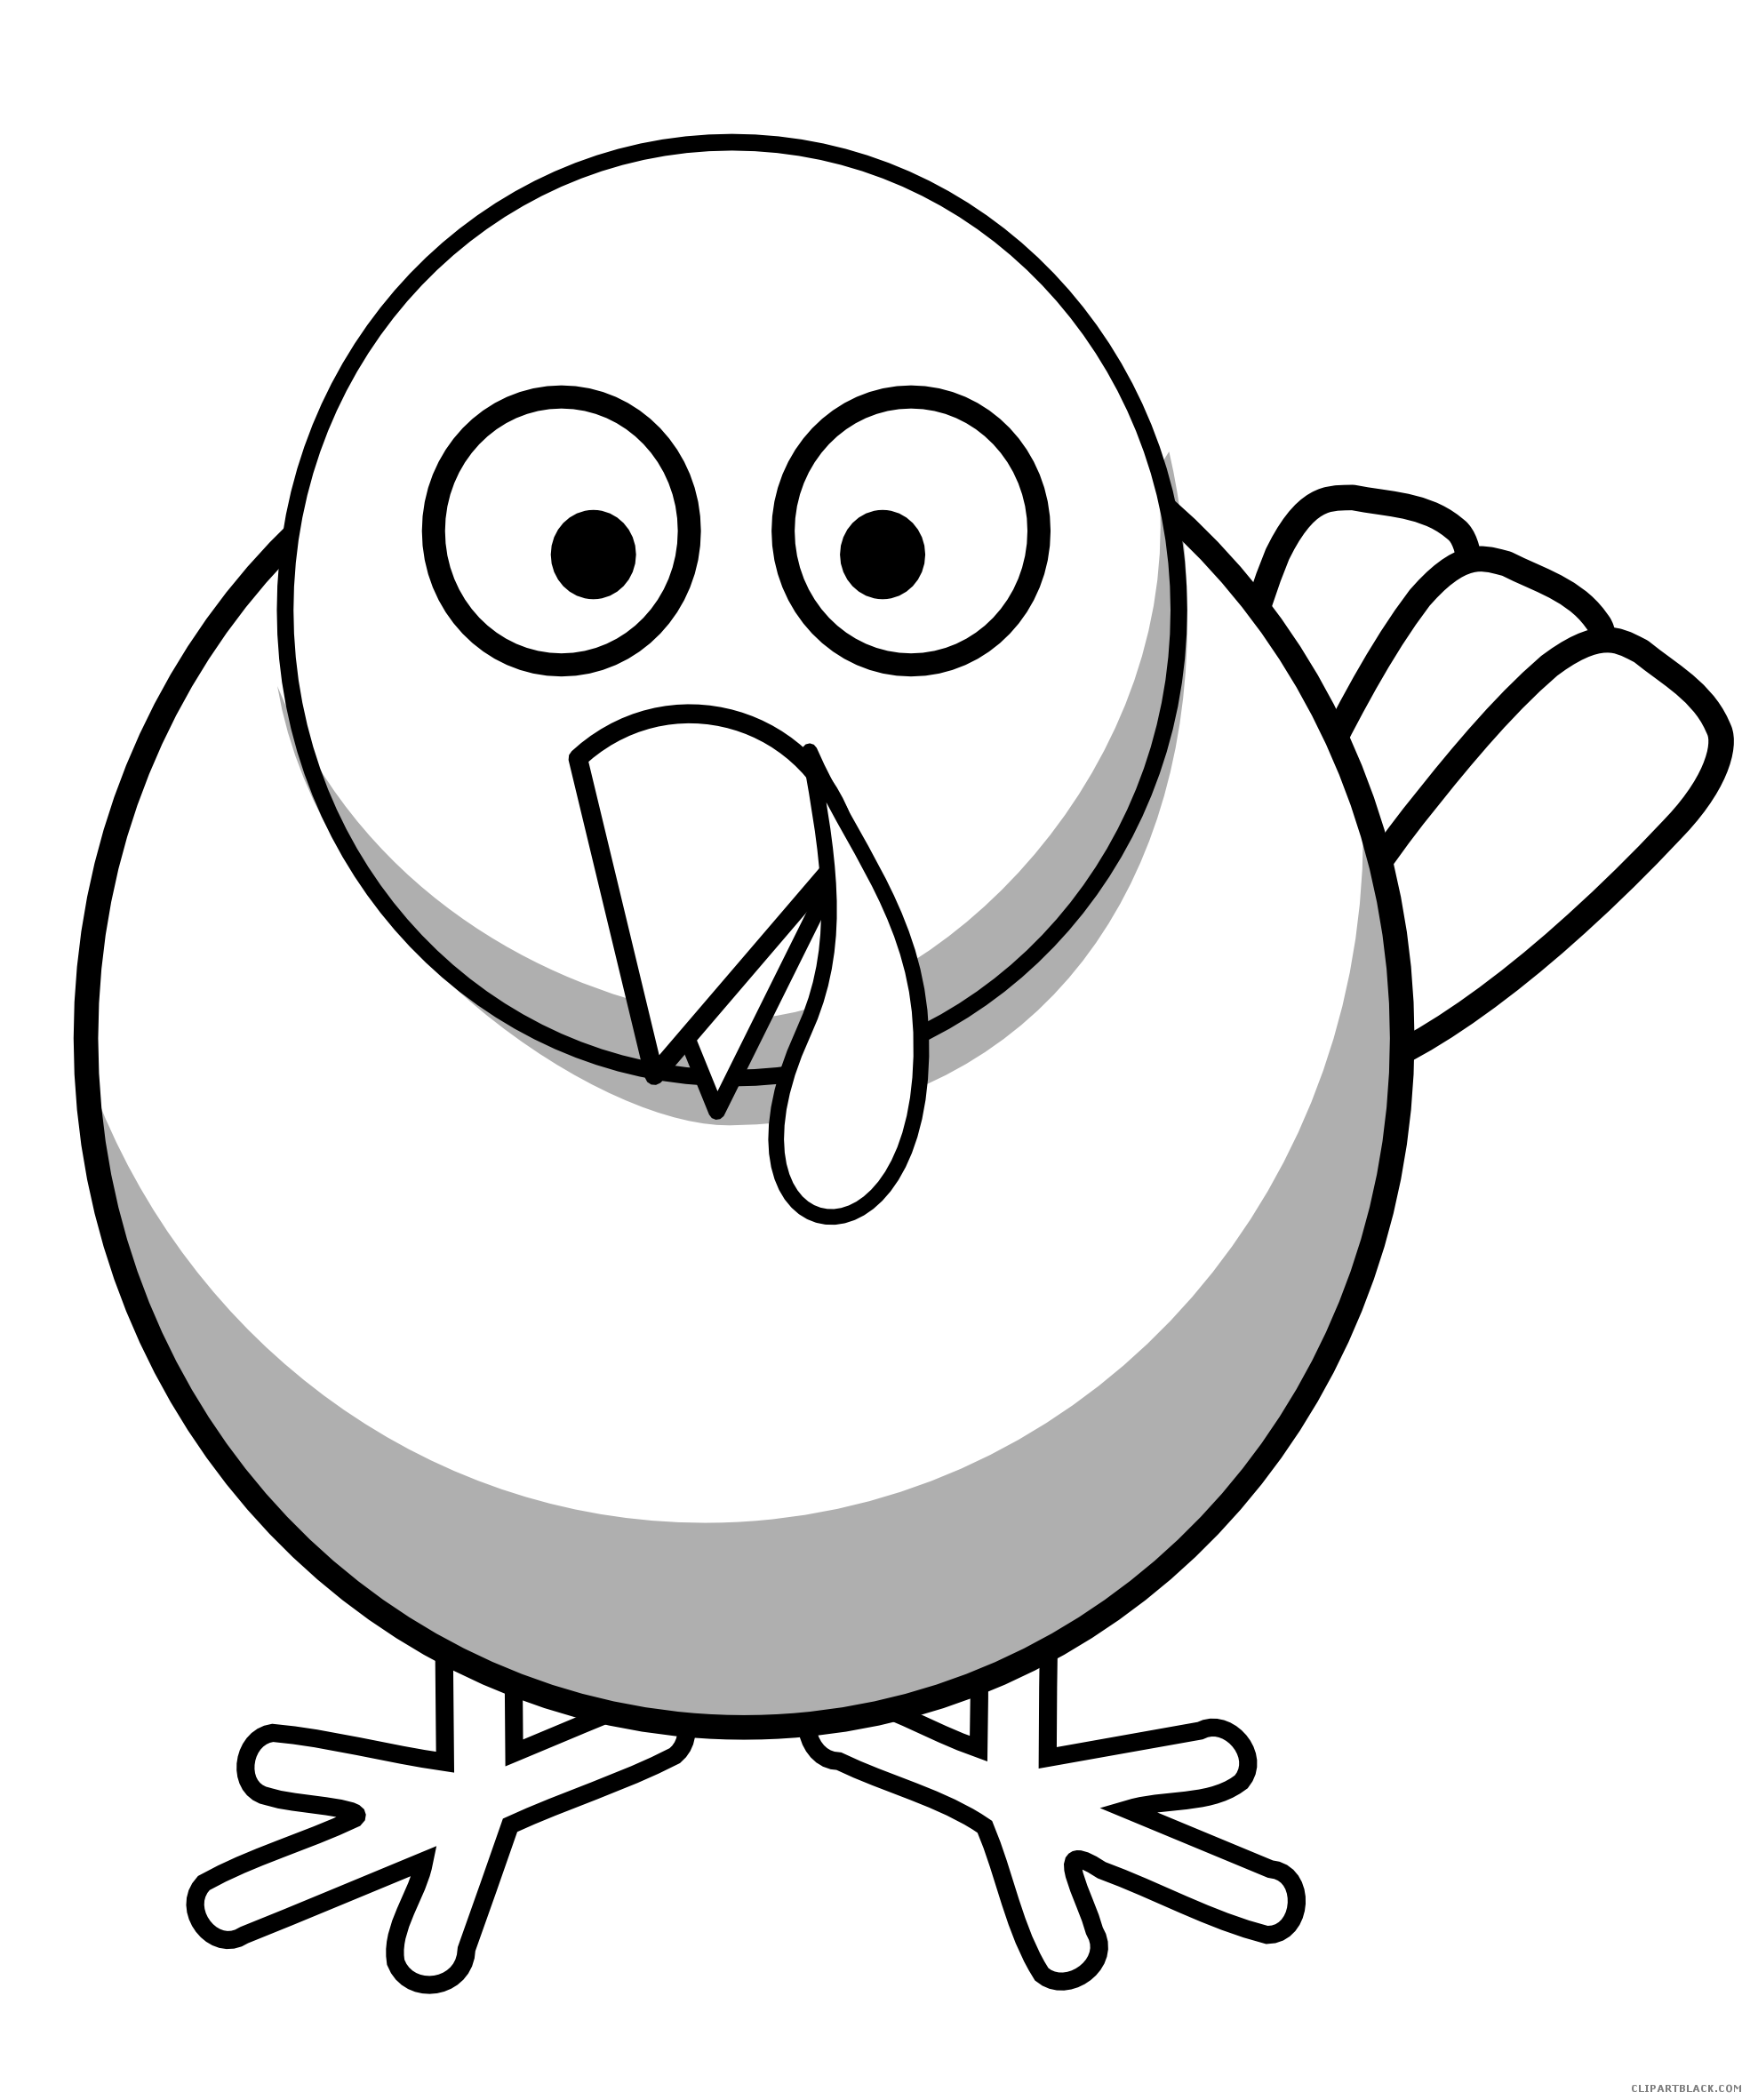 Free black and white turkey clipart graphic Black and White Turkey Clipart - ClipartBlack.com graphic